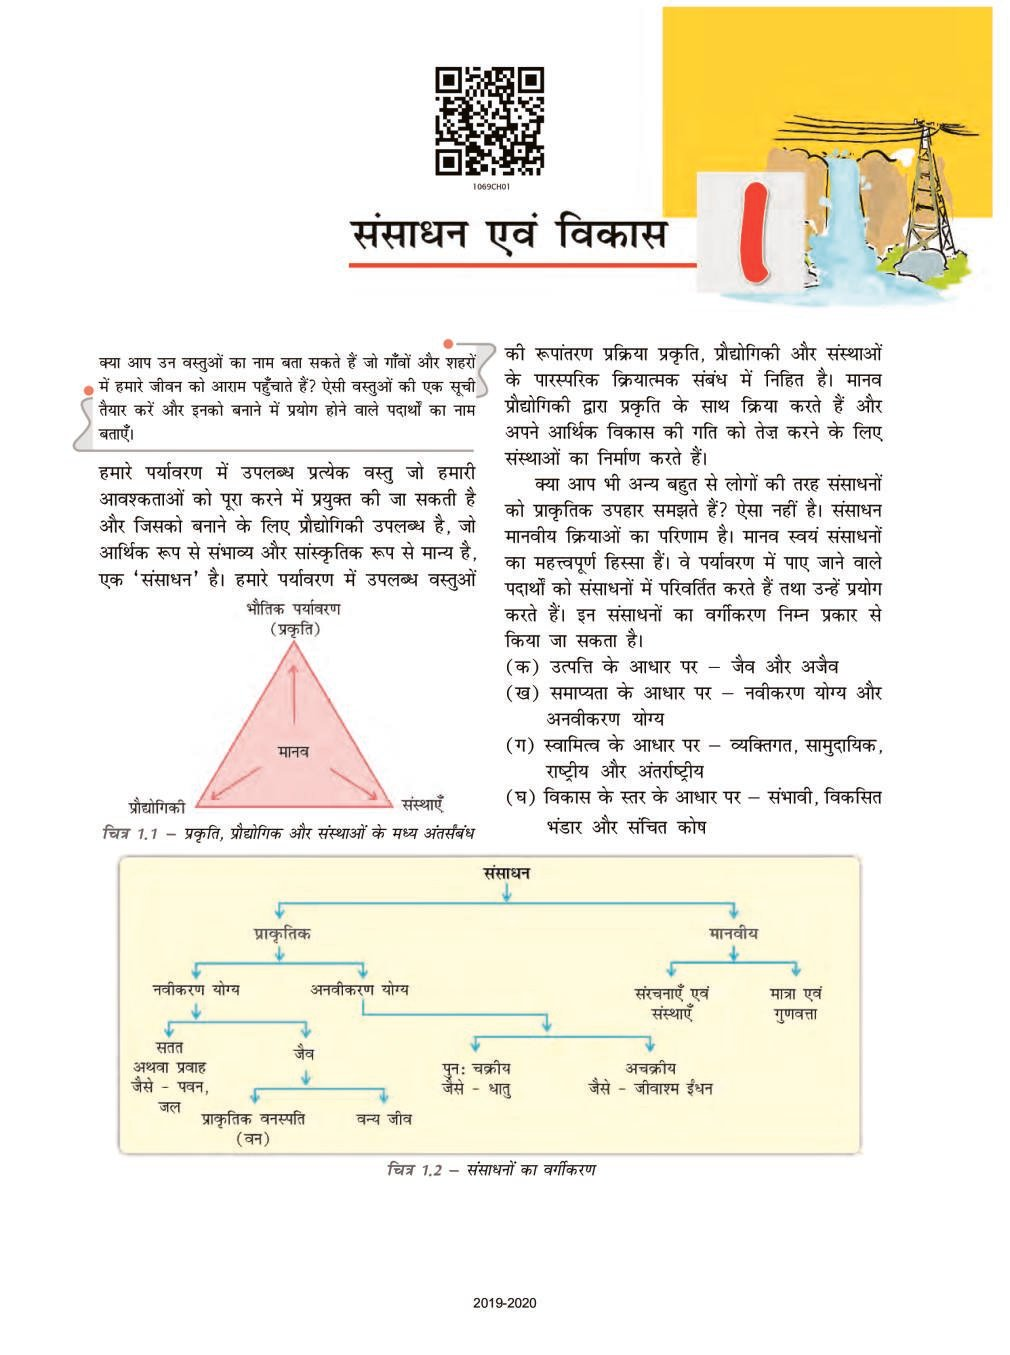 NCERT Book Class 10 Social Science (भूगोल) Chapter 1 संसाधन एवं विकास - Page 1